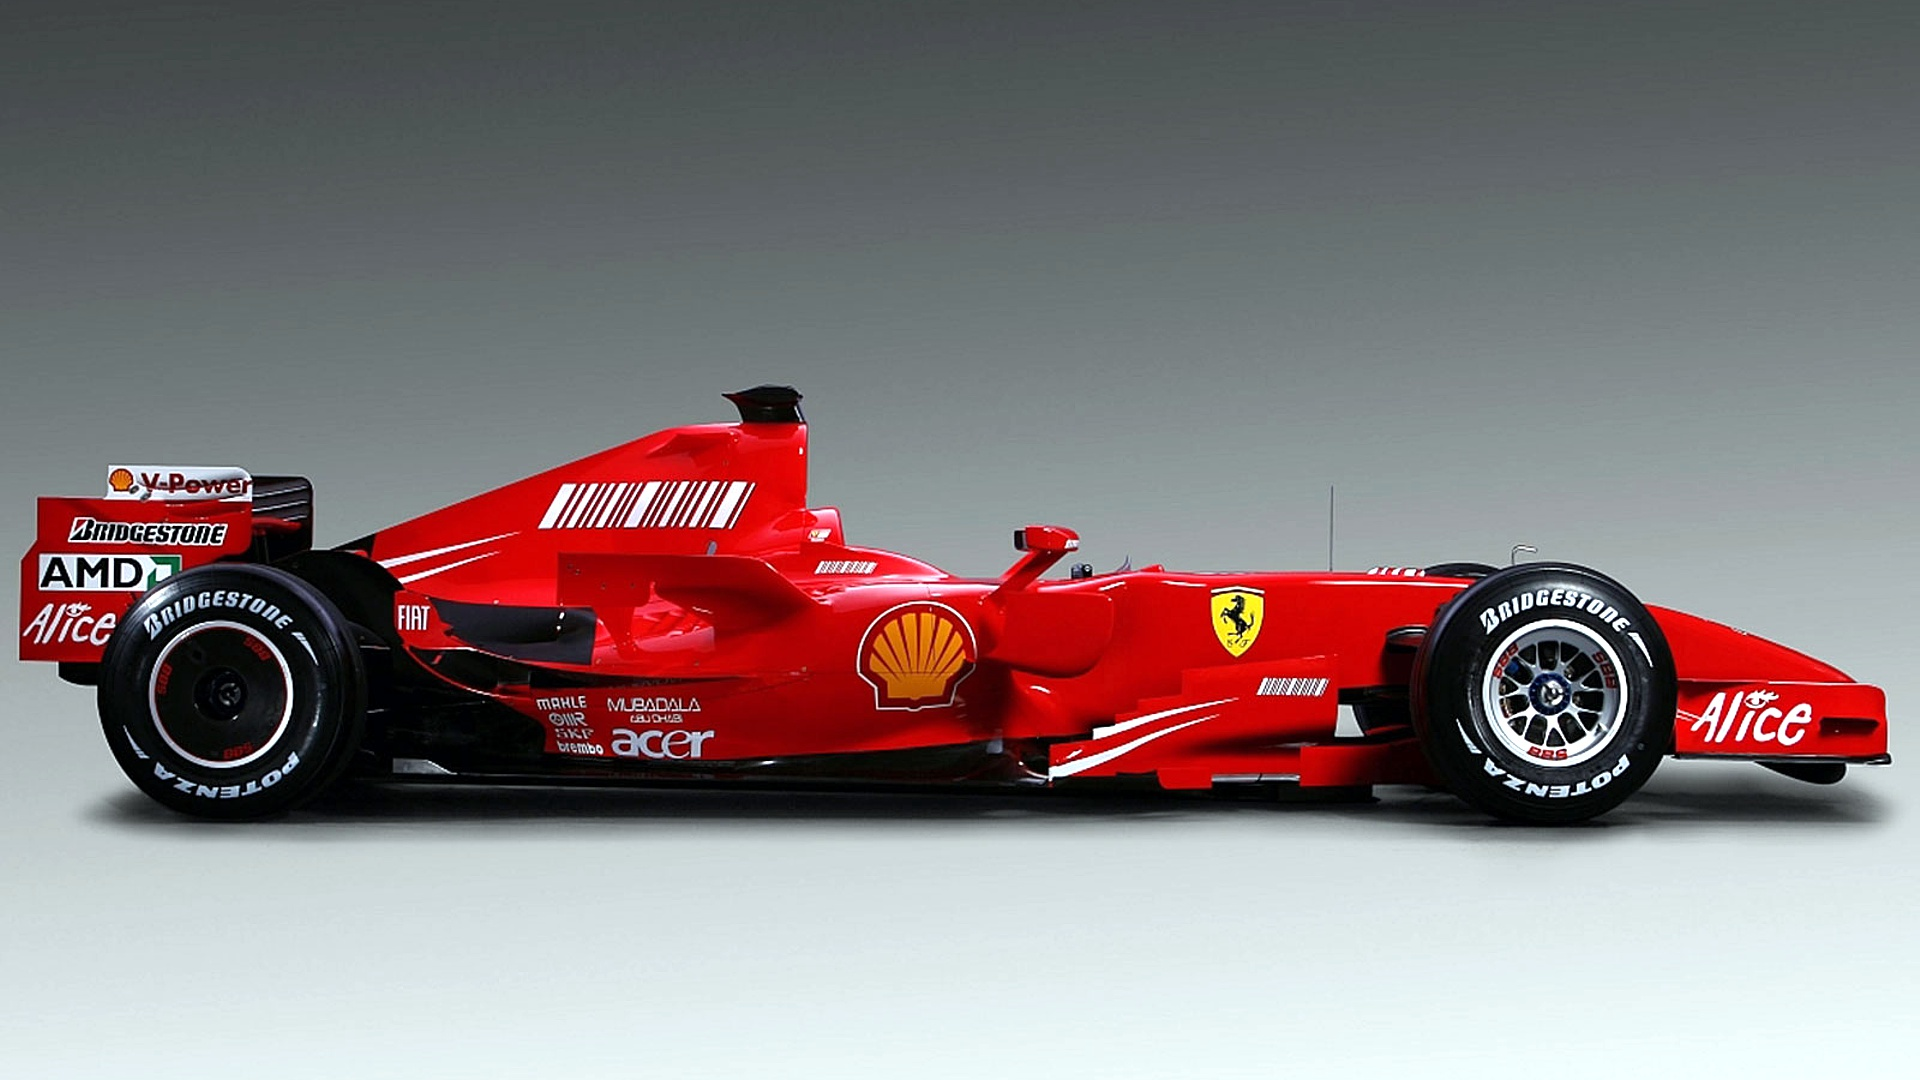 HD Wallpaper Backgrounds For Your Desktop F1 Cars Wallpapers Are 1920x1080